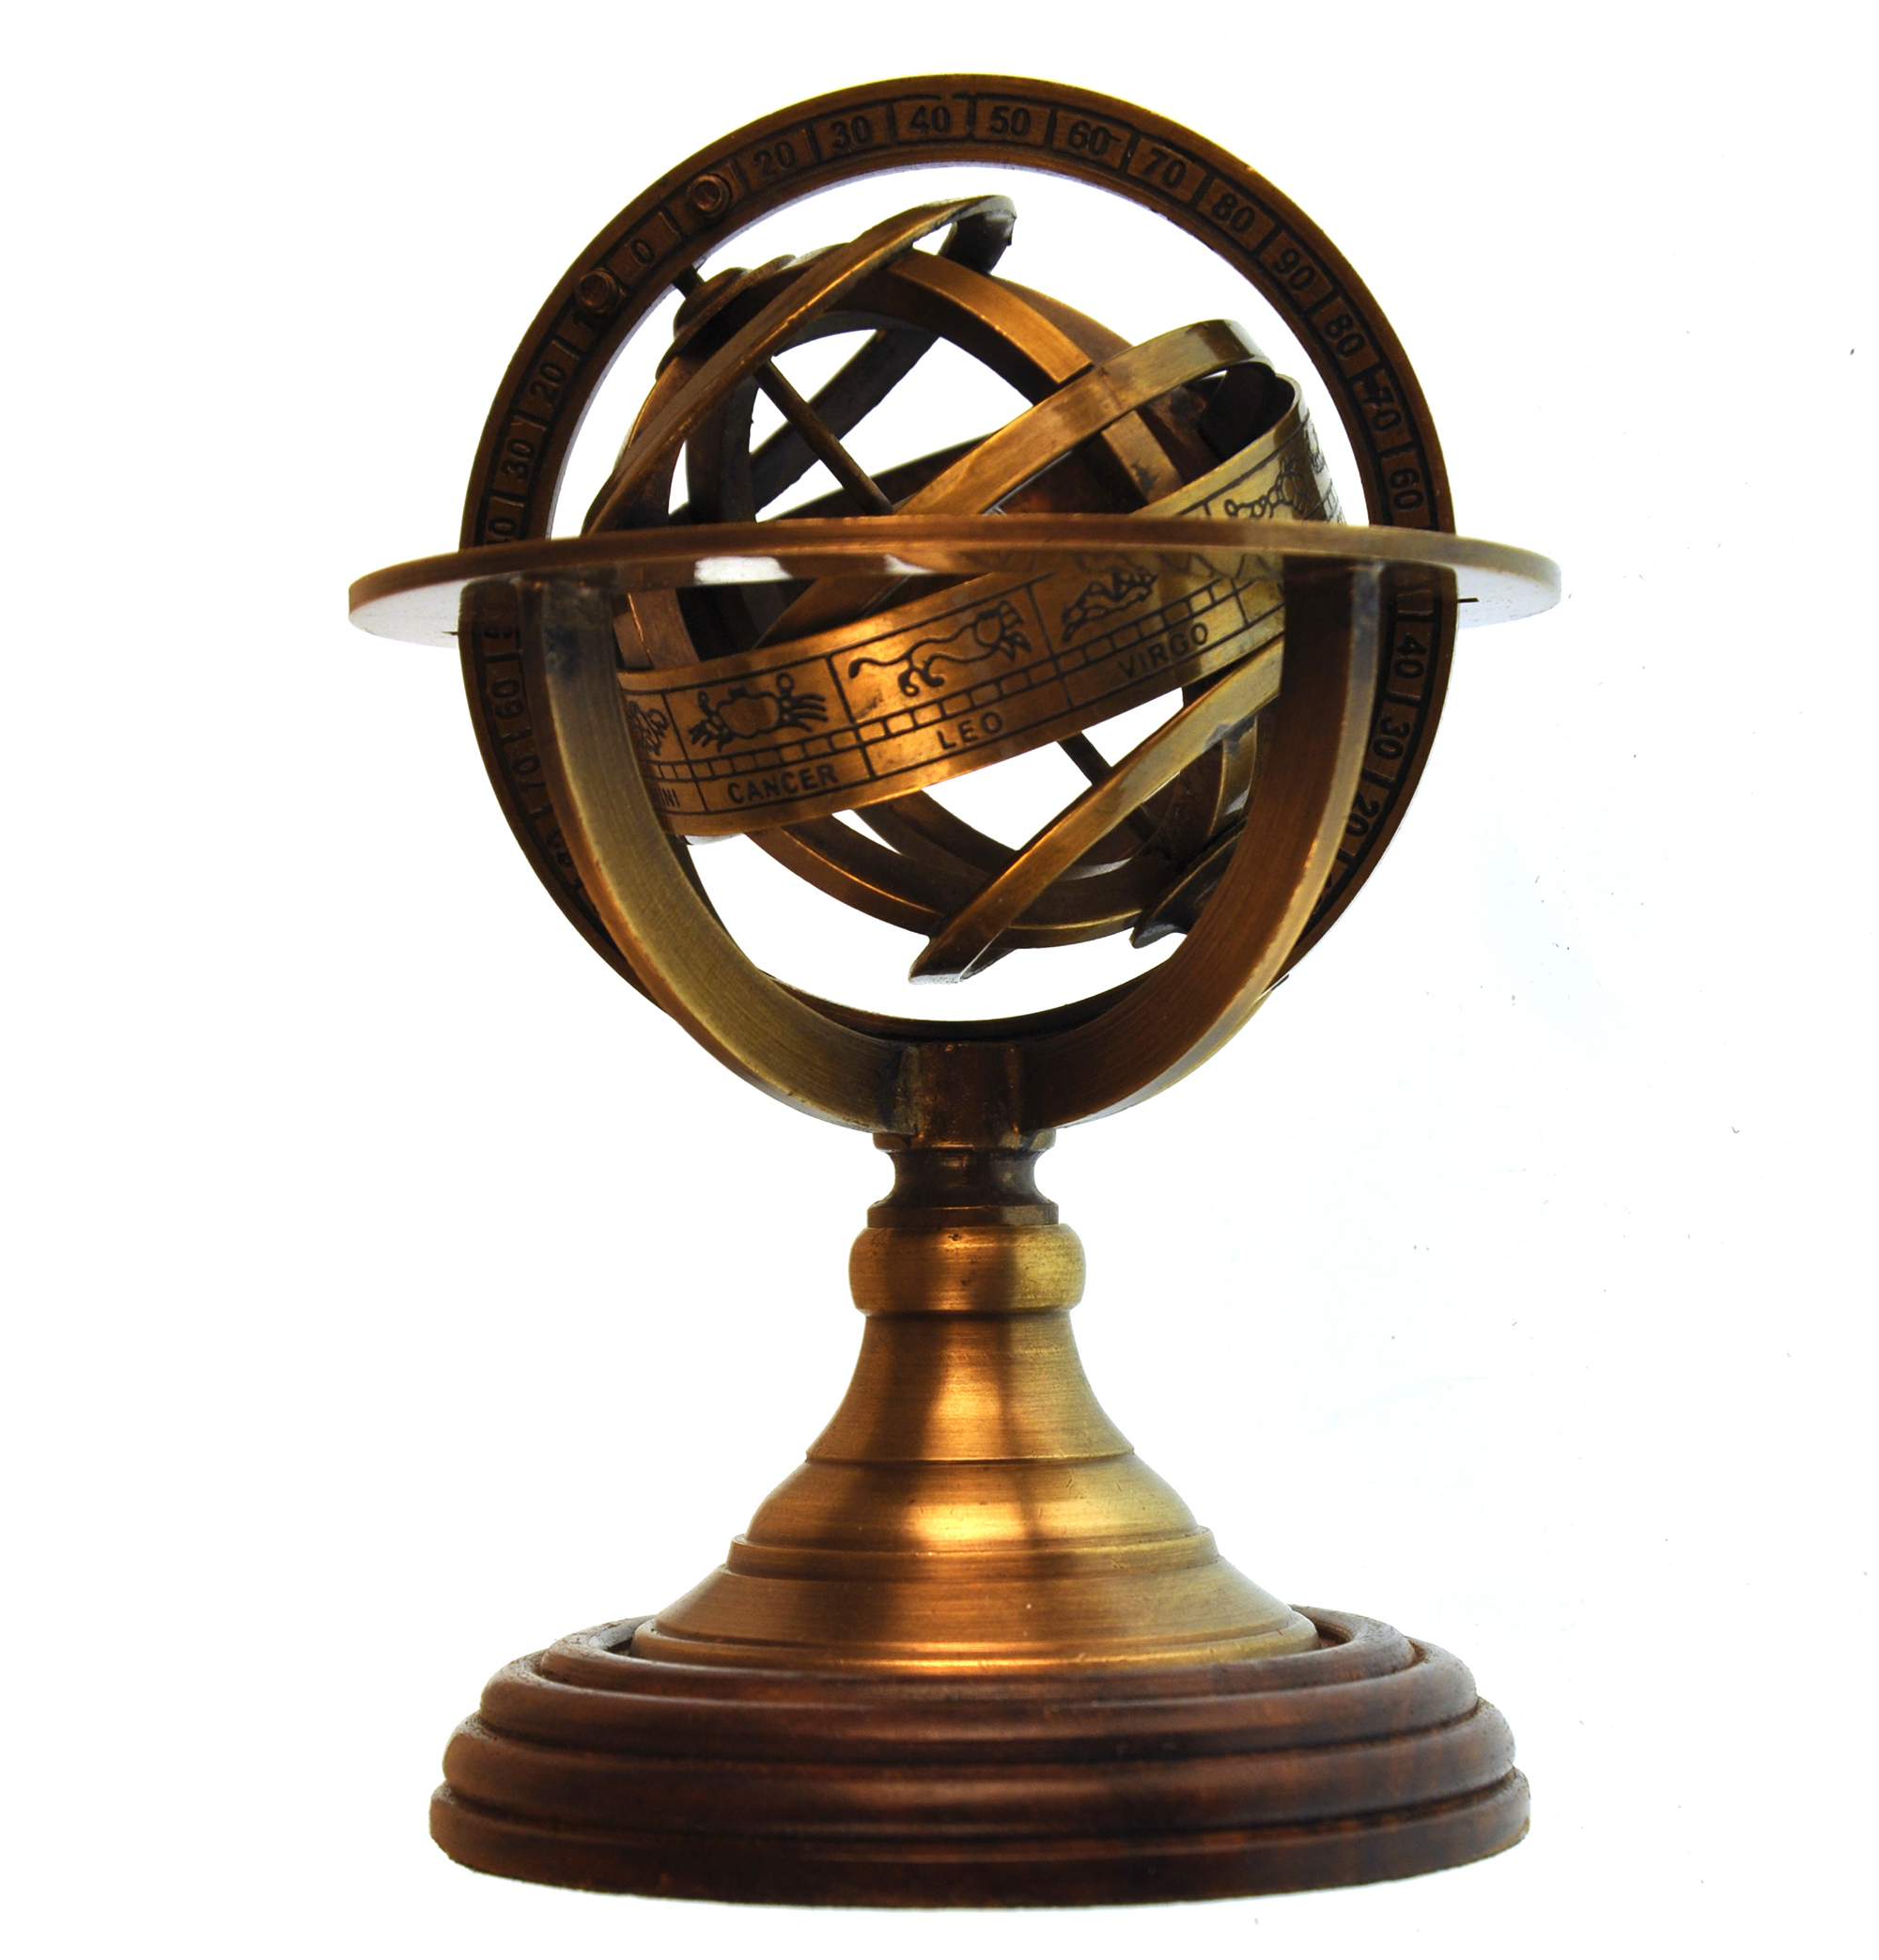 Antique Science Instruments : Armillary sphere astrology globe scaled replica antique